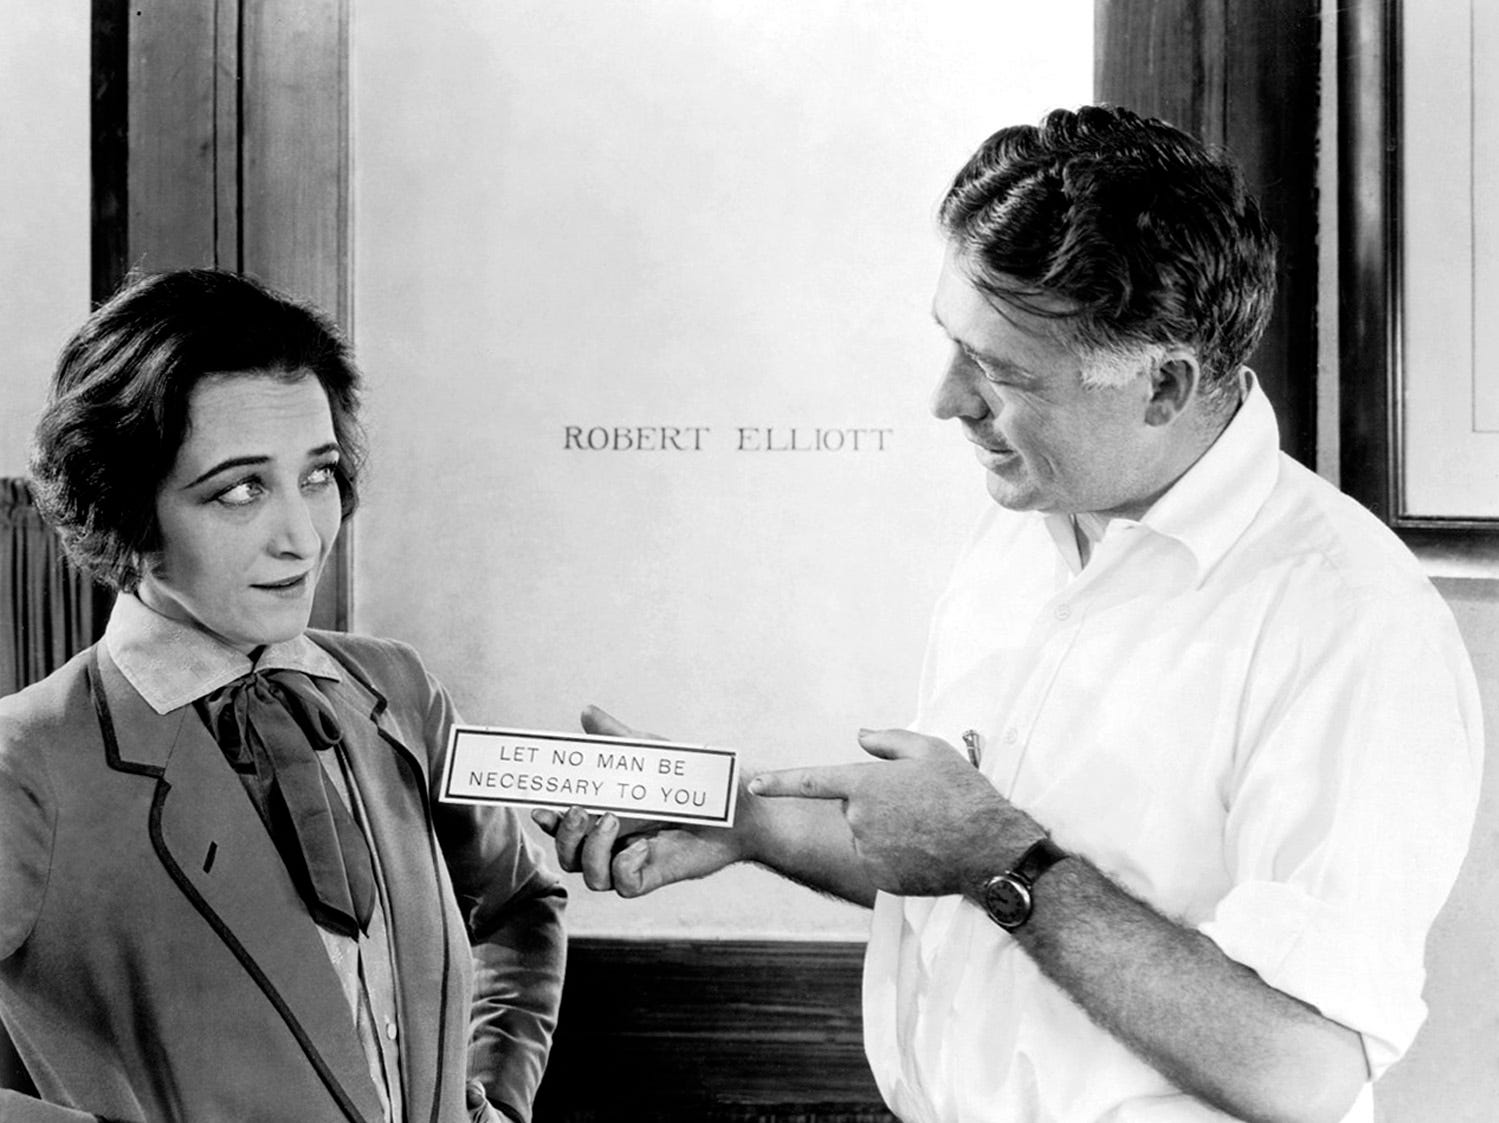 1925: Director Clarence Brown (1890 - 1987) presents a plaque to actress Pauline Frederick (1883 - 1938) on the set of 'Smouldering Fires', in front of Robert Elliott's office door. The plaque reads 'Let No Man Be Necessary To You'.